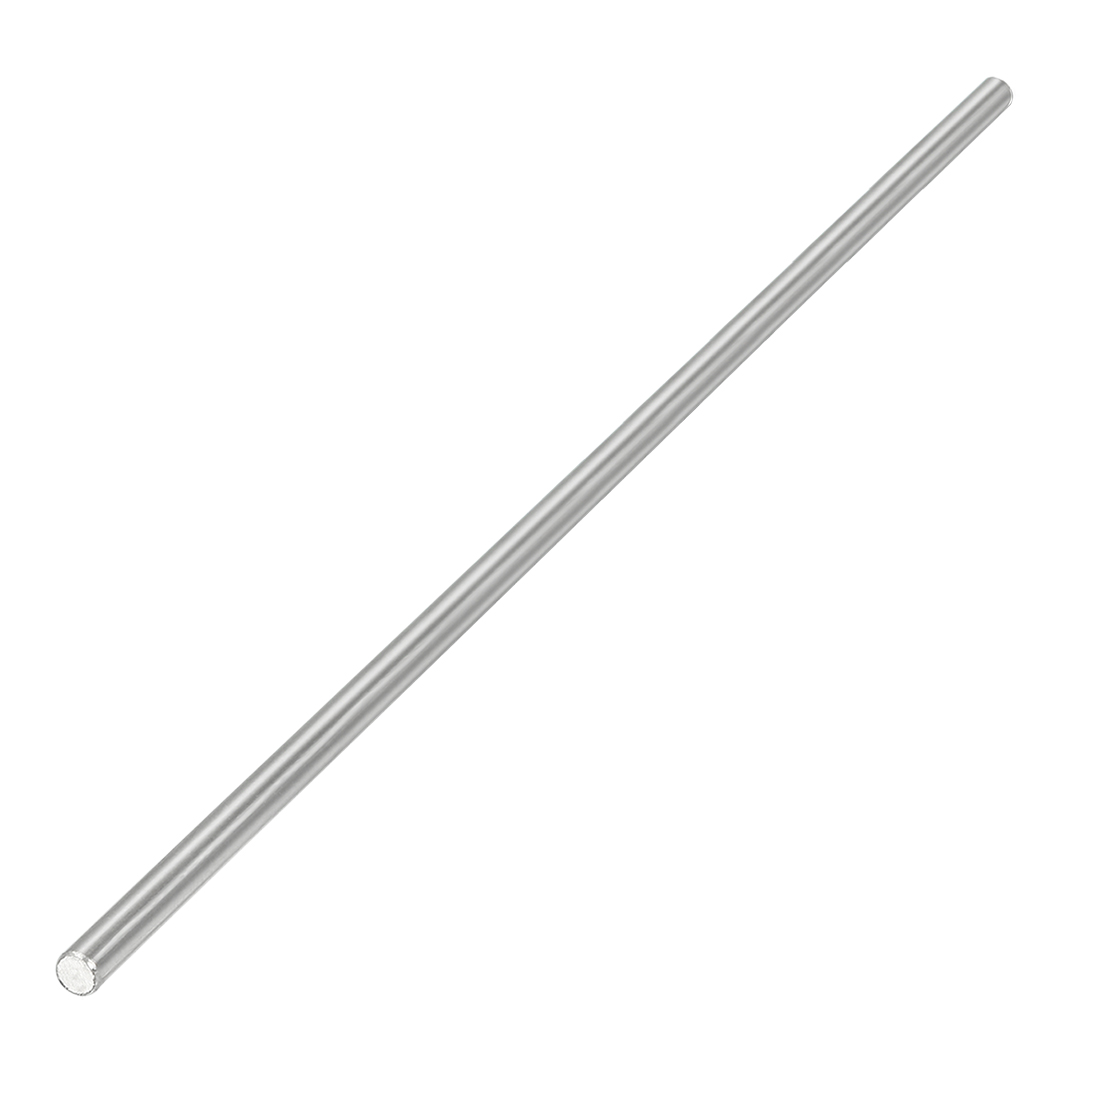 Stainless Steel Round Shaft Rod Axle 2mm x 150mm for RC Toy Car